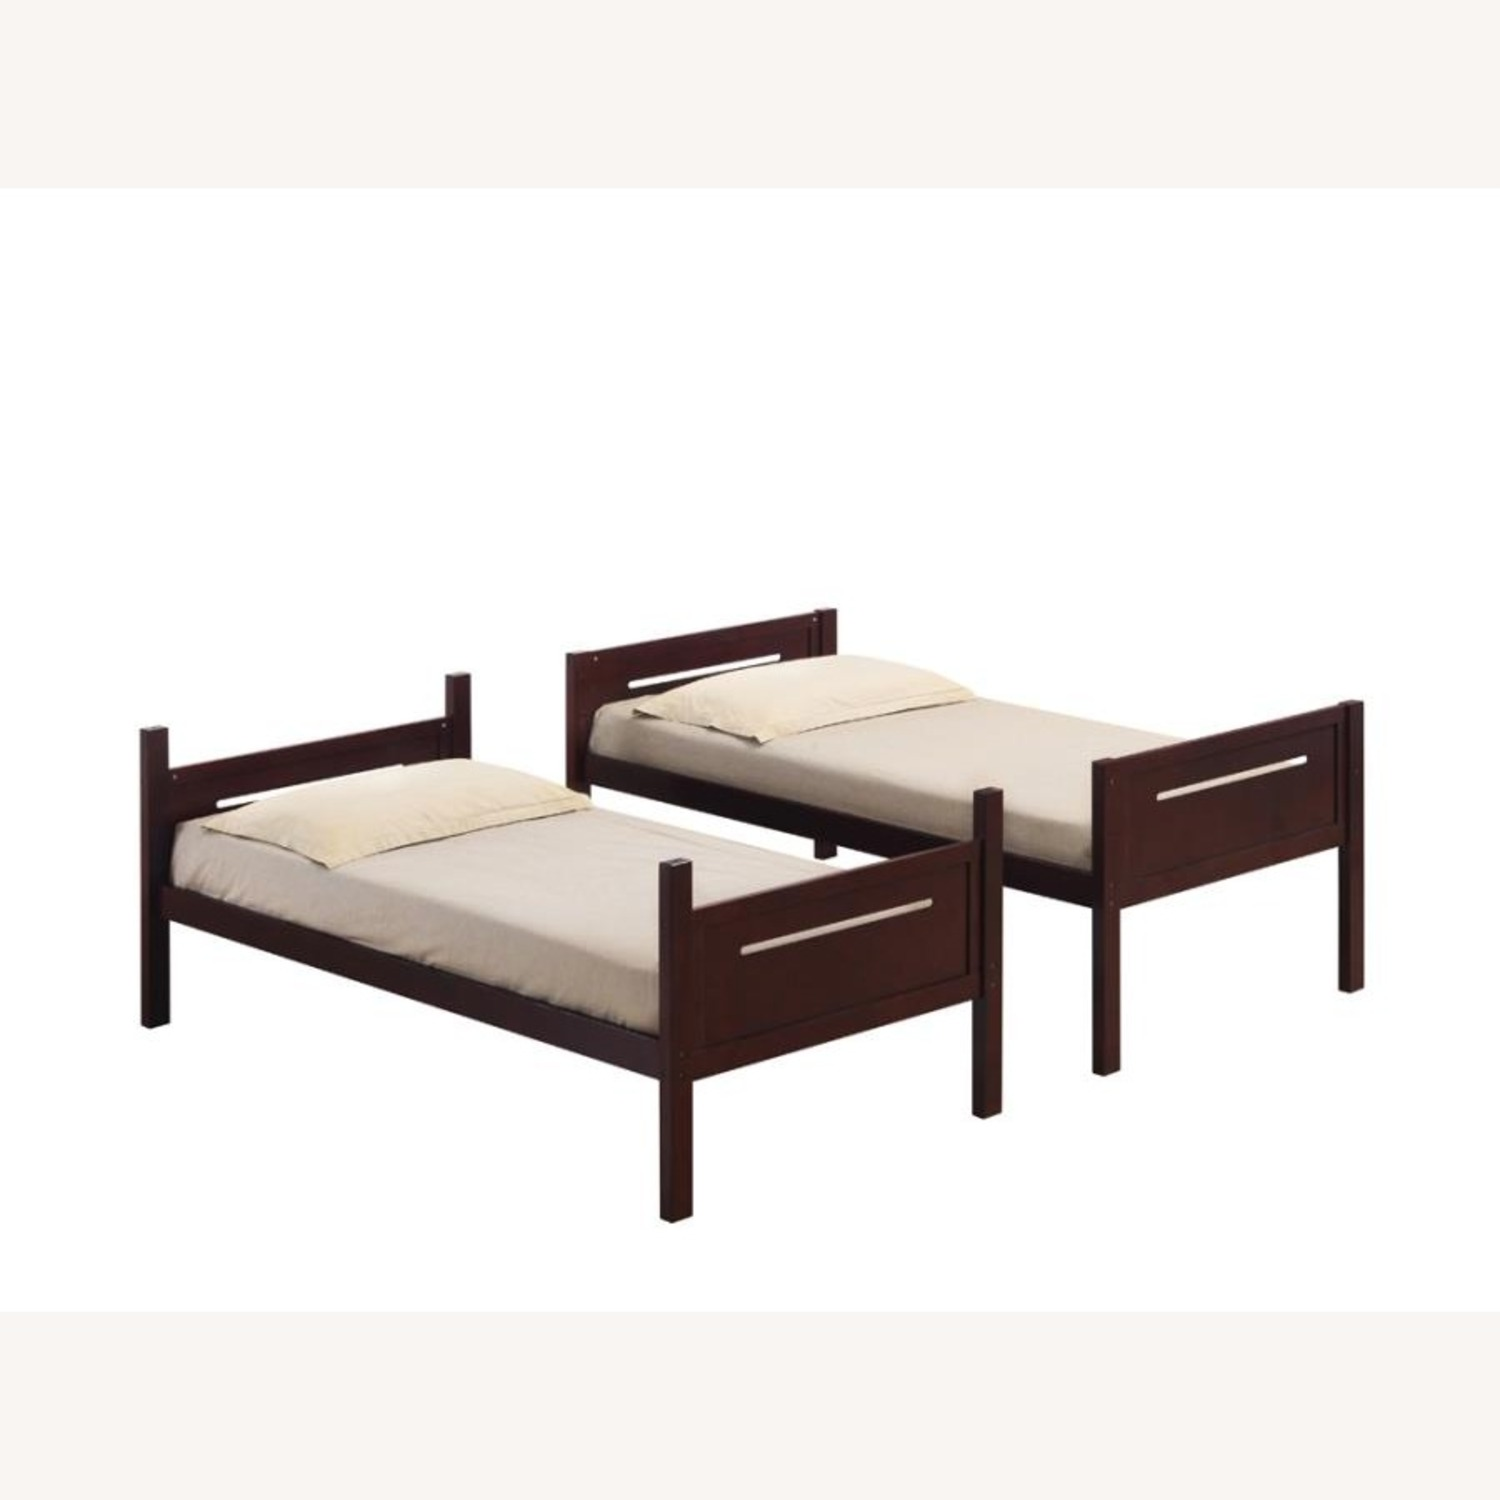 Bunk Bed In Espresso Solid Rubberwood Finish - image-3